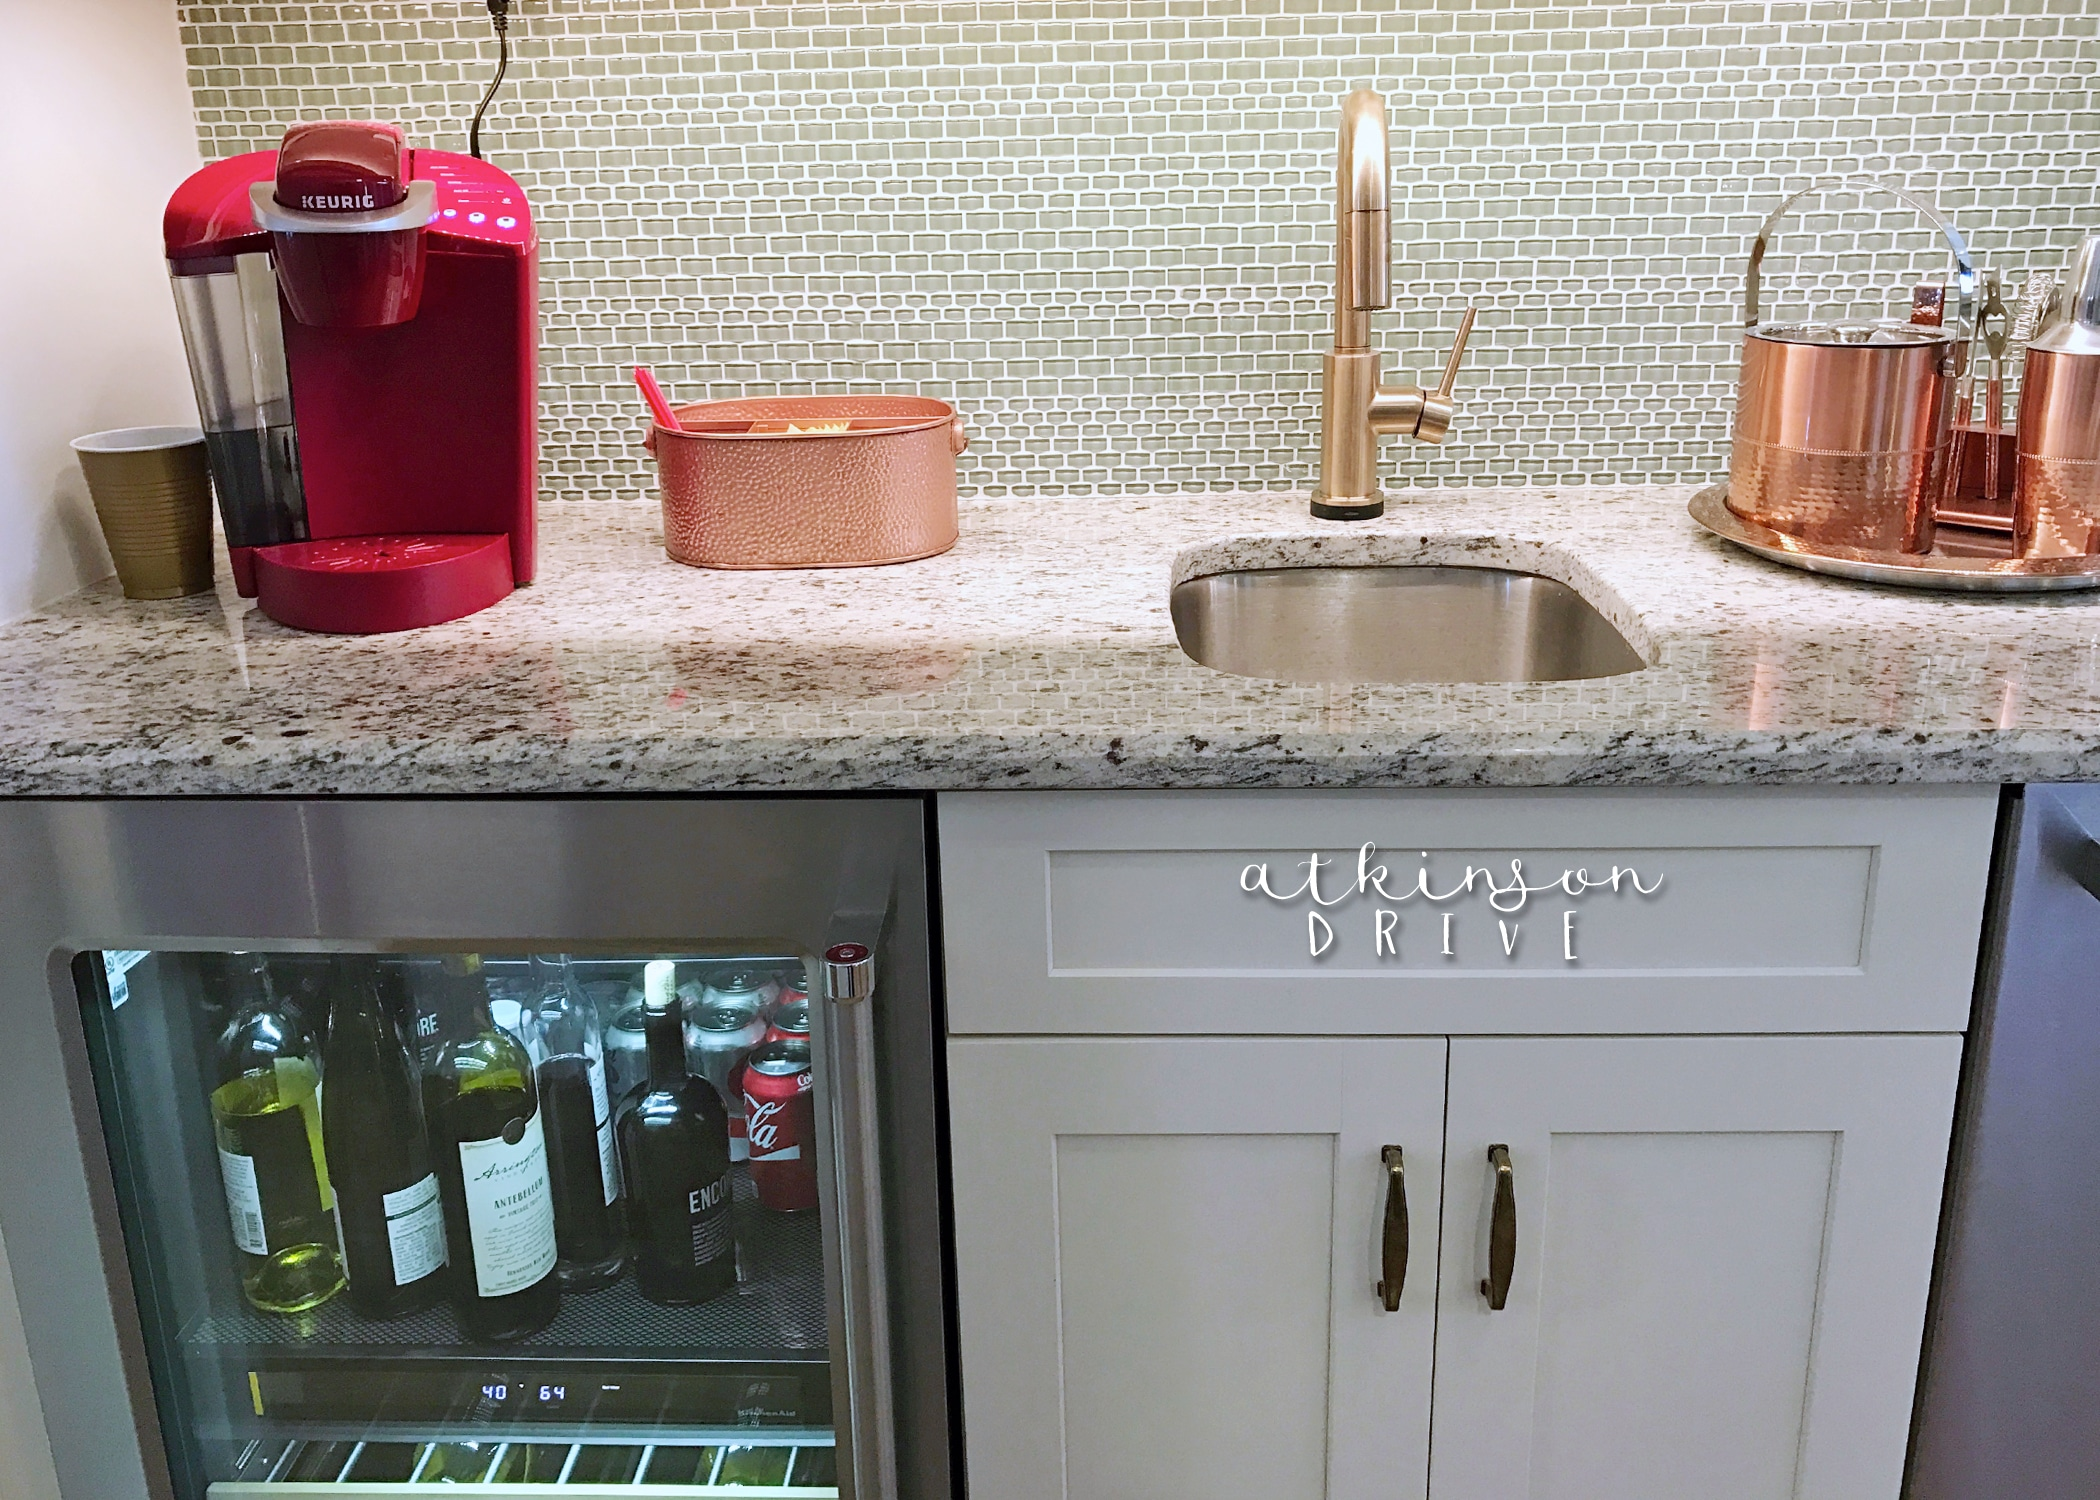 Butler's pantry with a beverage fridge and coffee bar /// Woodridge Home Tour by Atkinson Drive